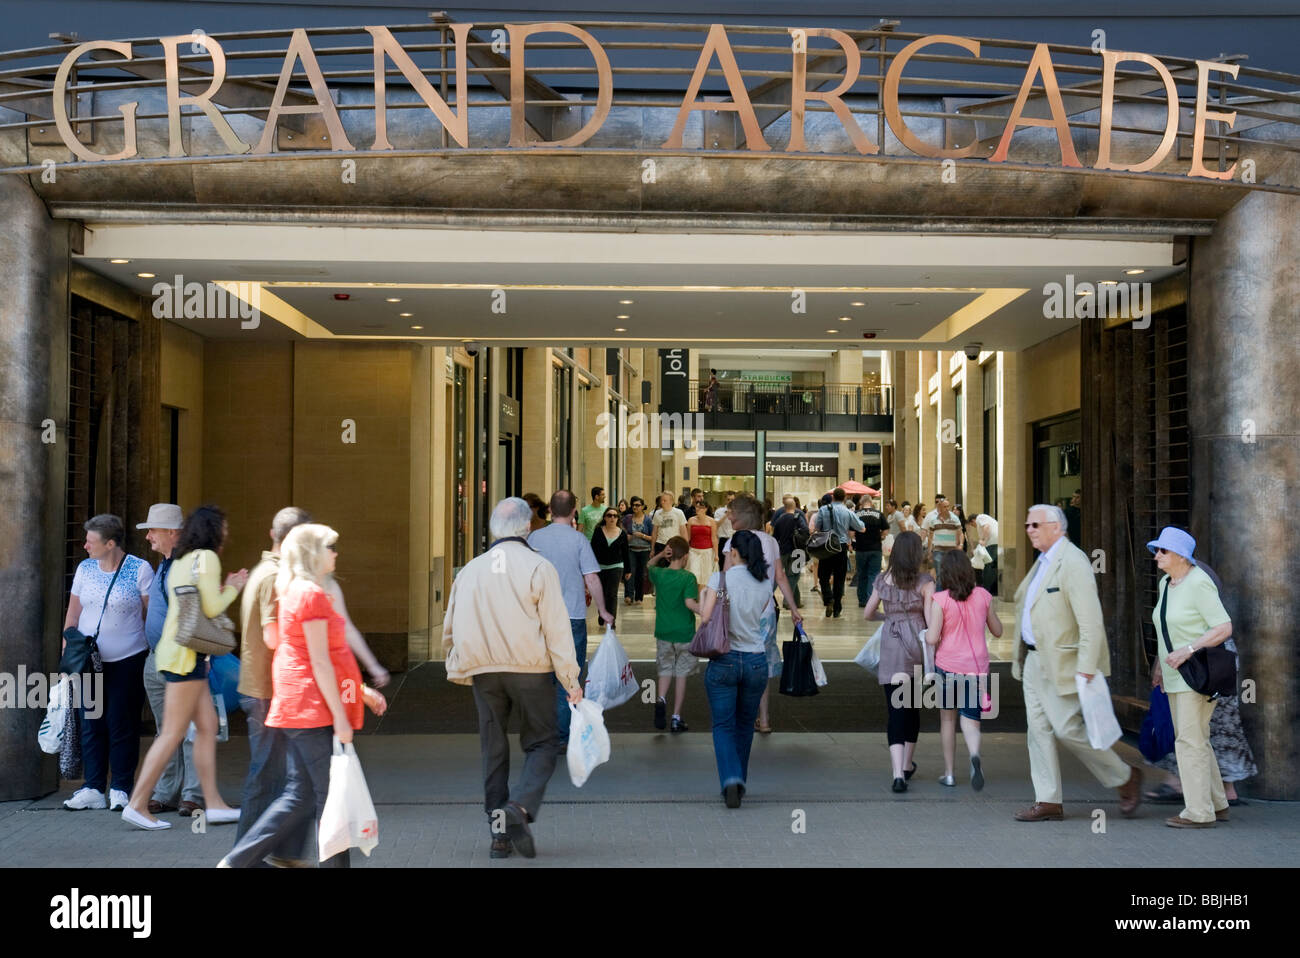 Crowds of shoppers on a sunny day entering the Grand Arcade shopping mall,  Cambridge, UK - Stock Image